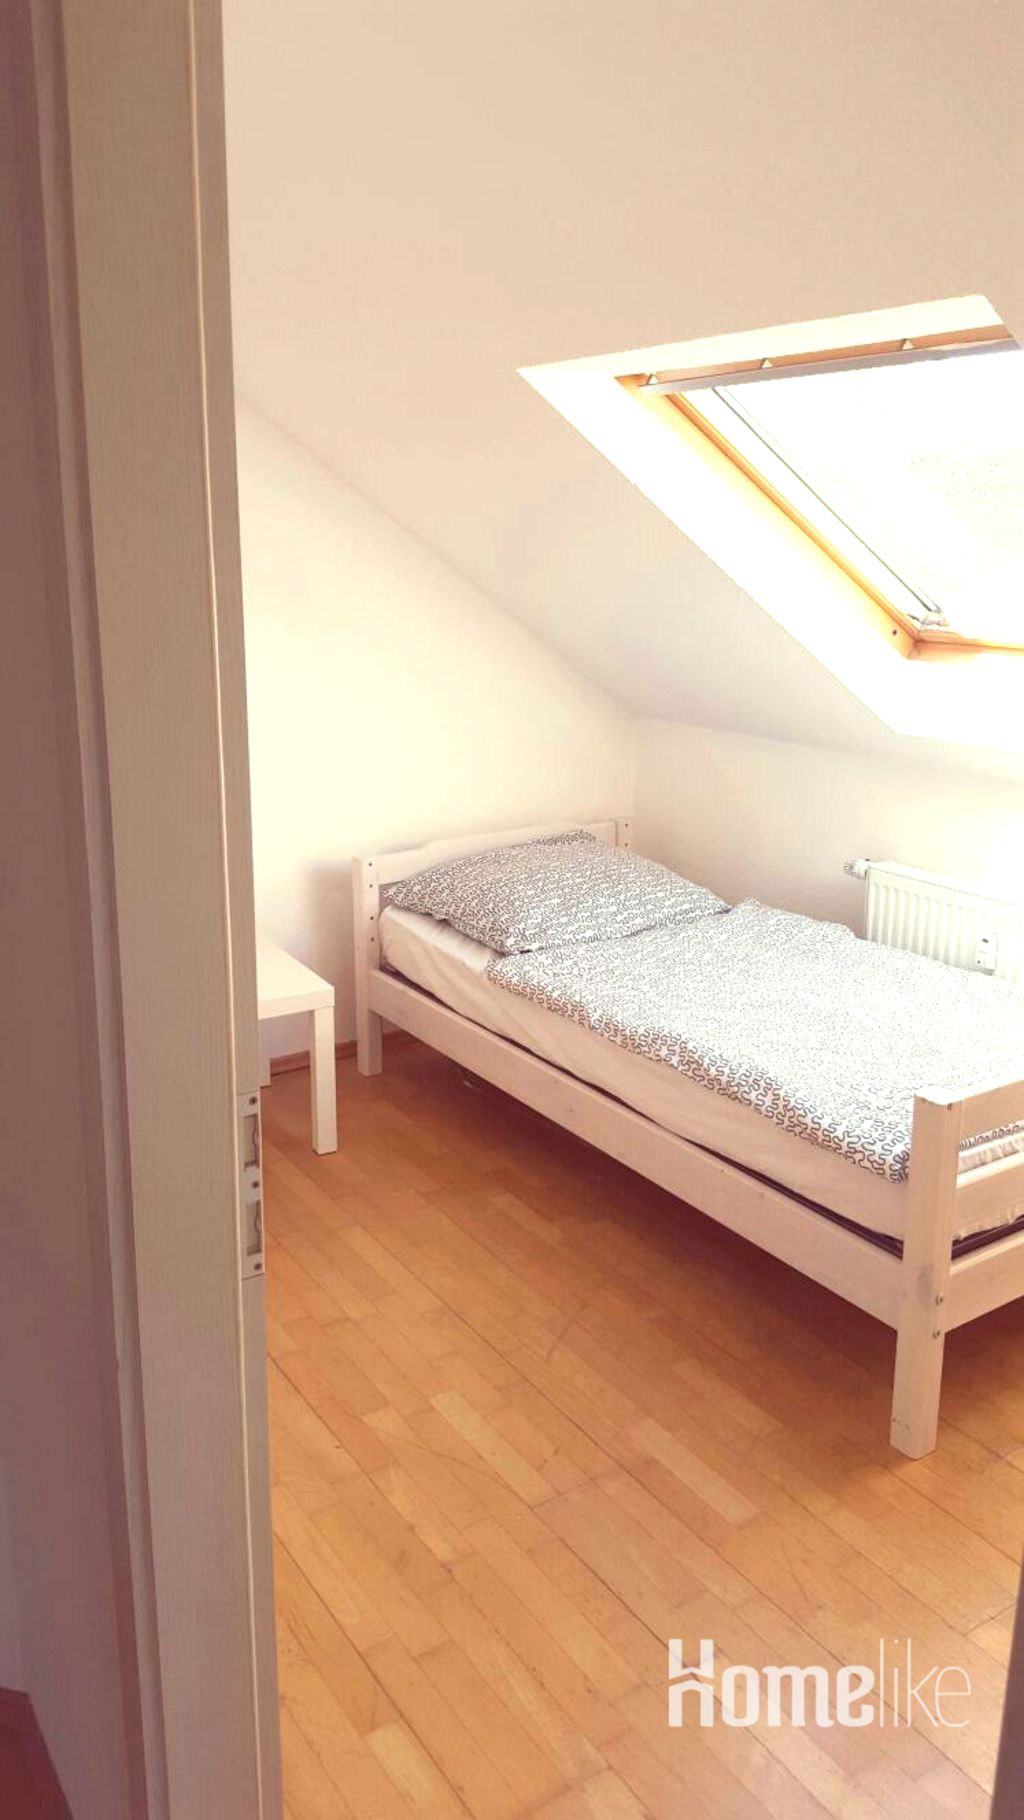 image 4 furnished 3 bedroom Apartment for rent in Eitorf, Rhein-Sieg